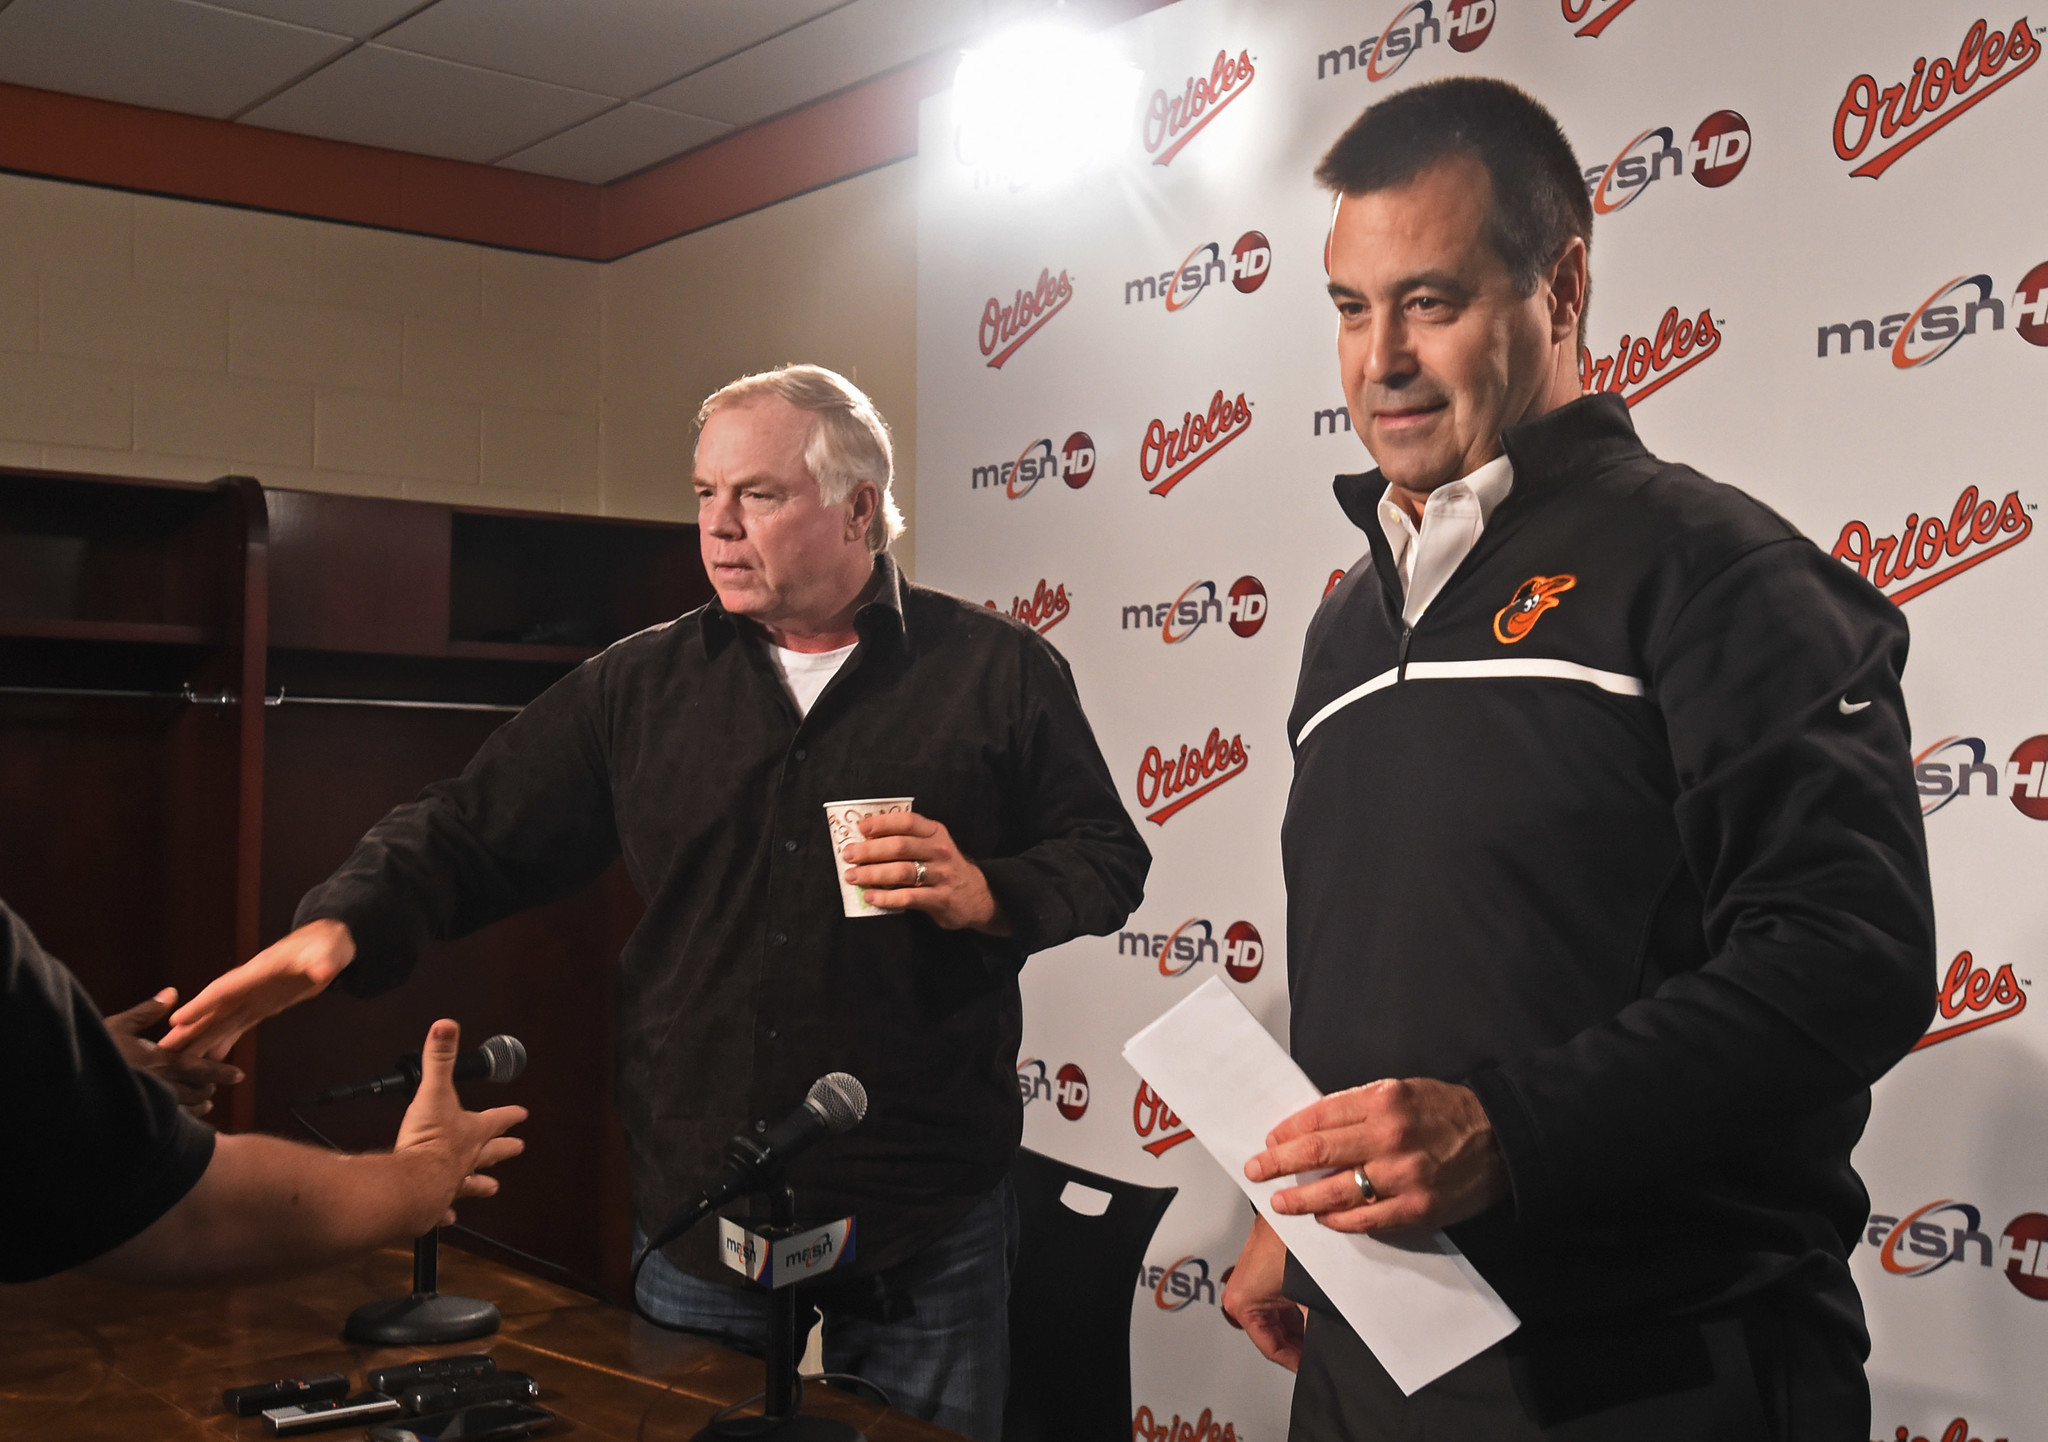 Bal-schmuck-duquette-indicates-orioles-might-not-have-big-changes-in-store-for-2017-20161006